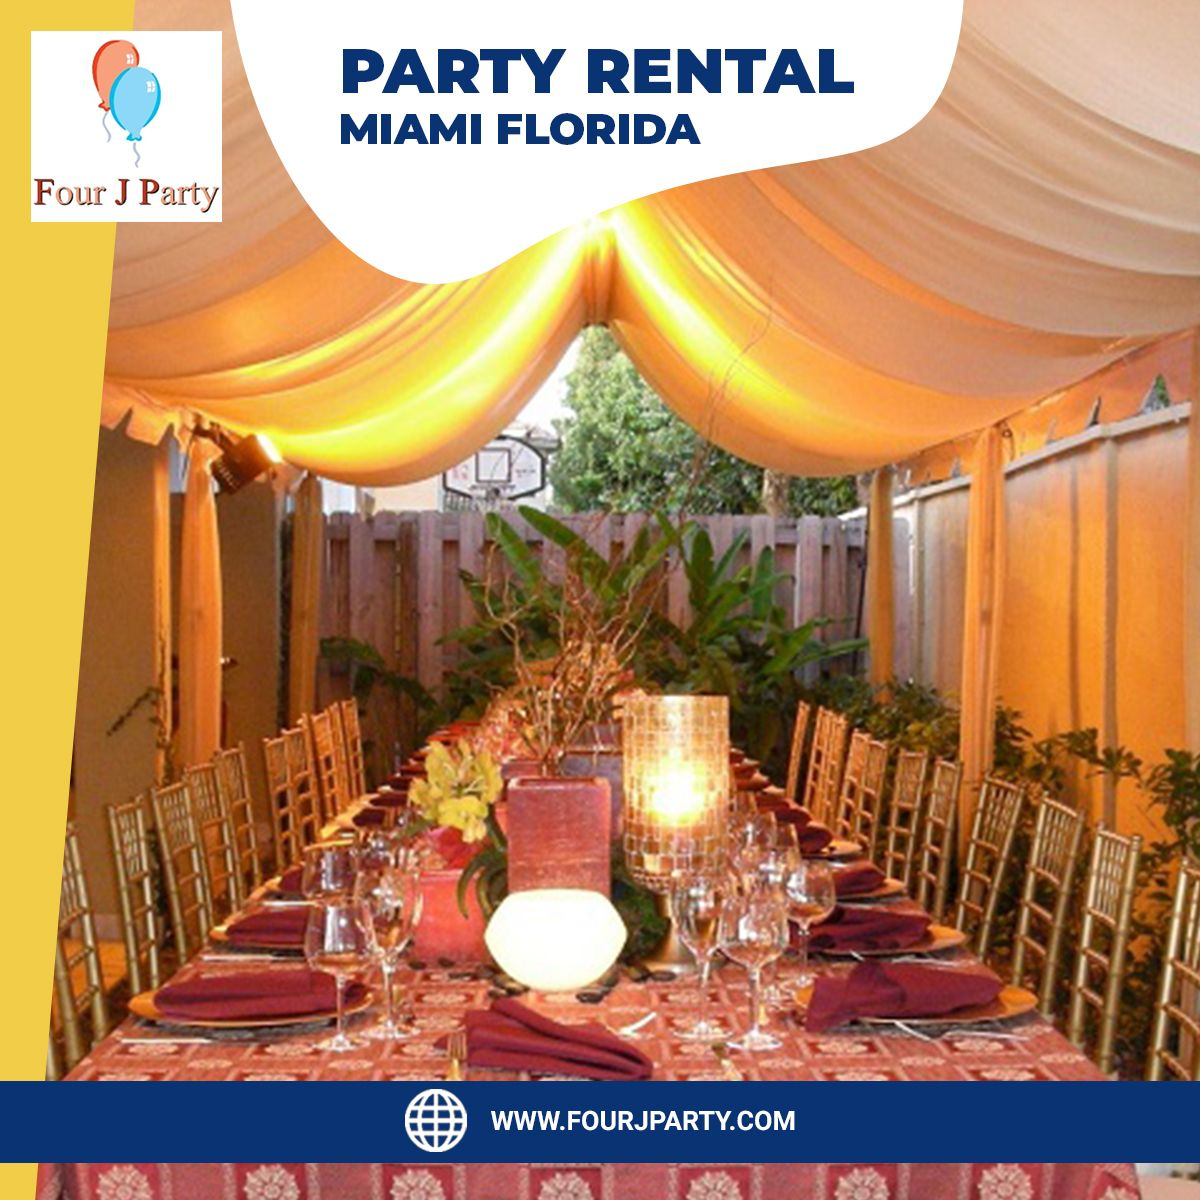 Four J Party has provided tent rentals, event rentals